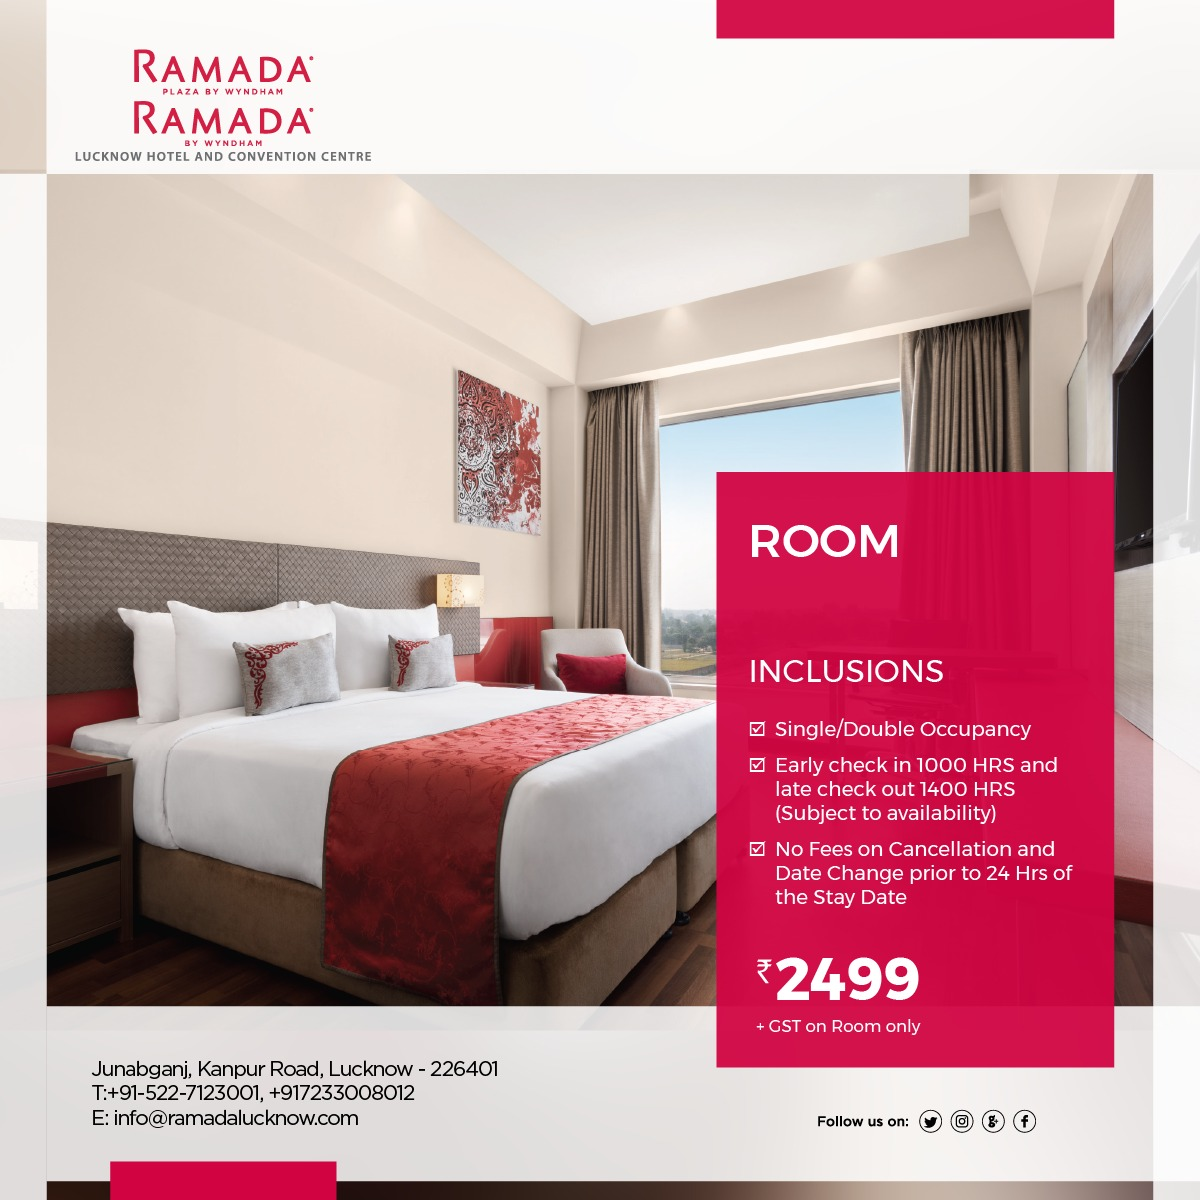 Festive Hotel Room Stay Package Lucknow